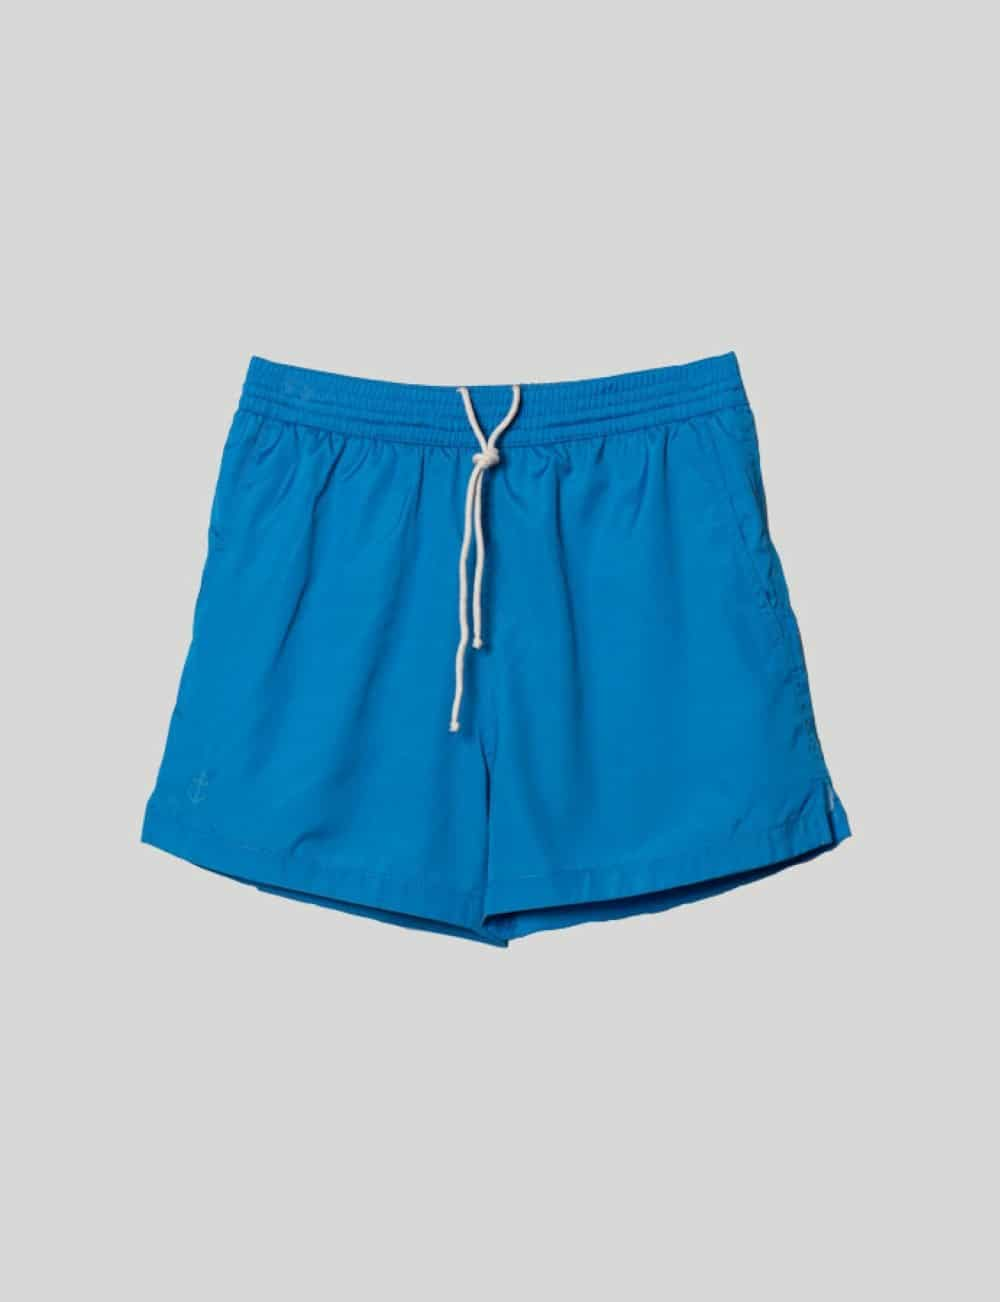 Castart - La Paz - Morais Swim Shorts - French Blue